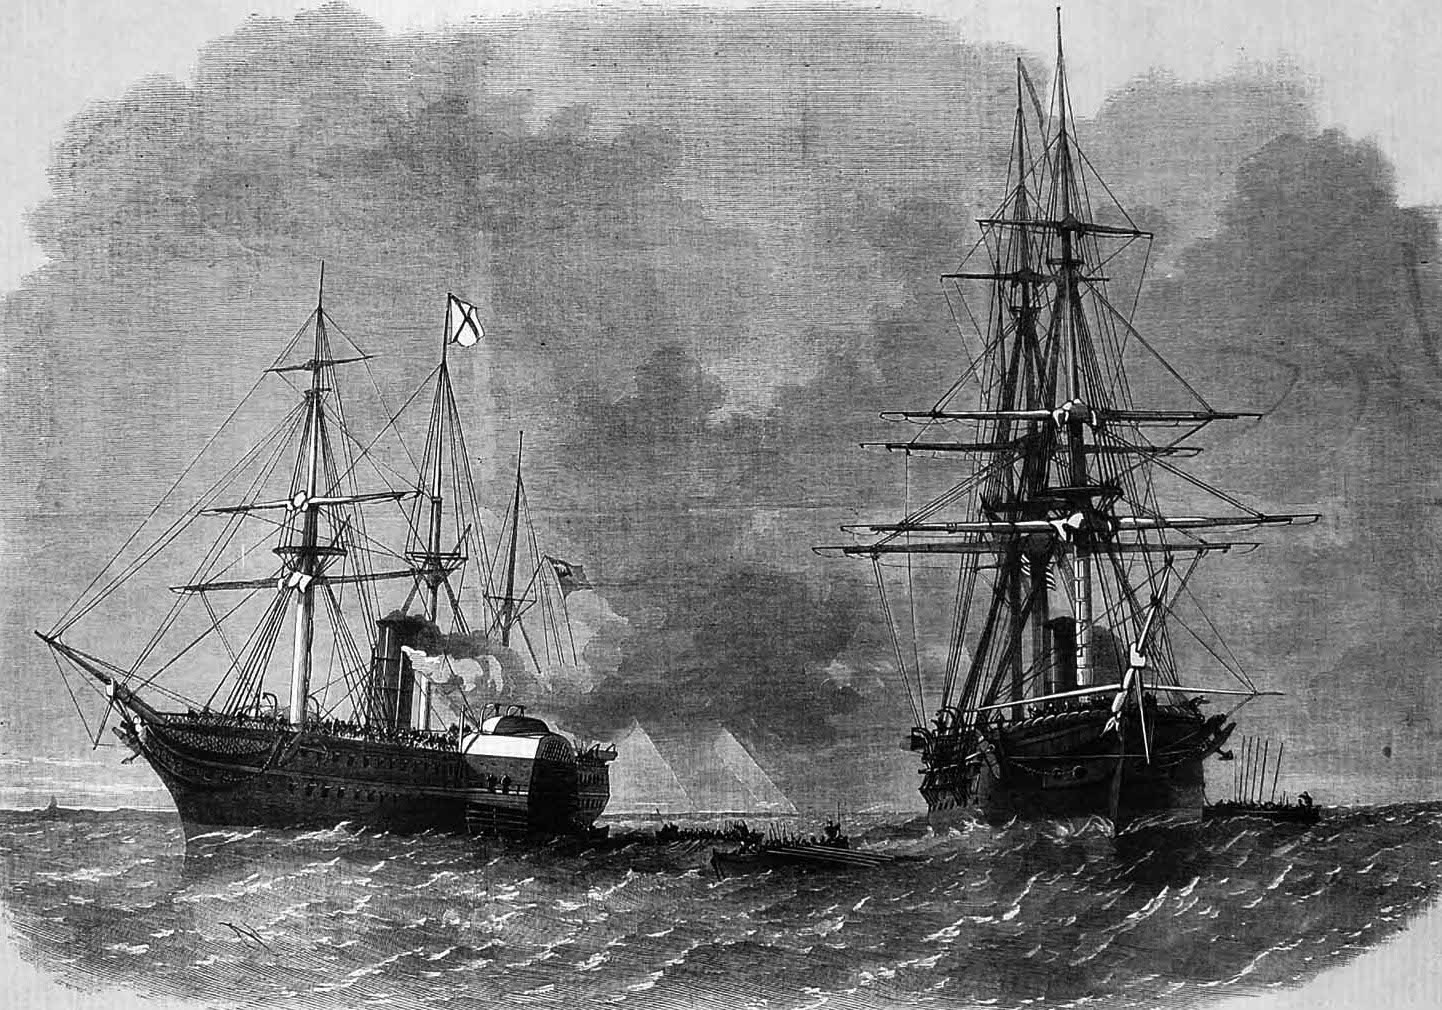 The USS San Jacinto intercepting to RMS Trent in 1861, an incident which caused major diplomatic fallout and which John Egan referenced in his letter of appeal (Illustrated London News)